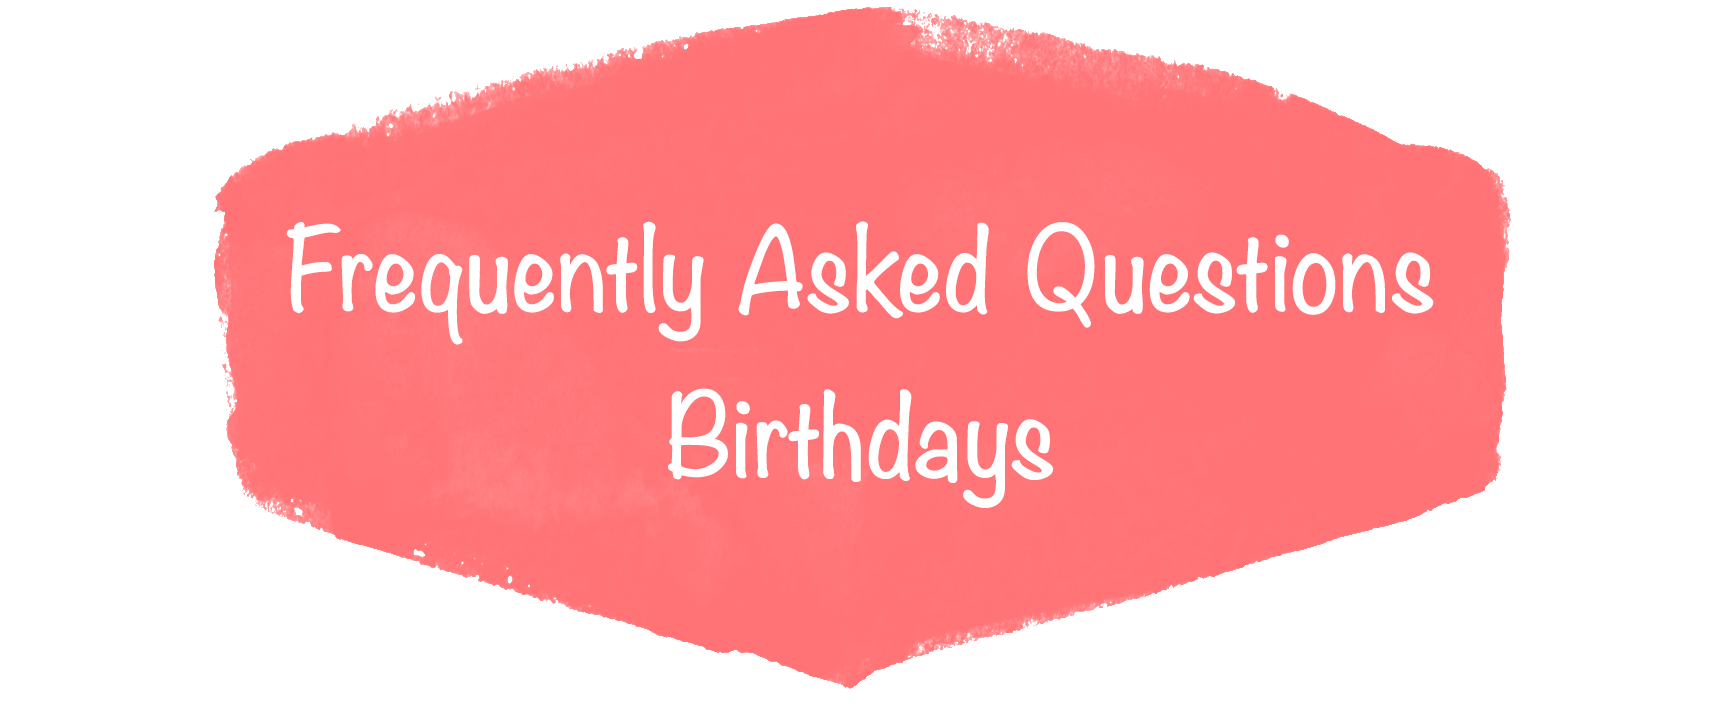 Frequently Asked Questions birthday .png